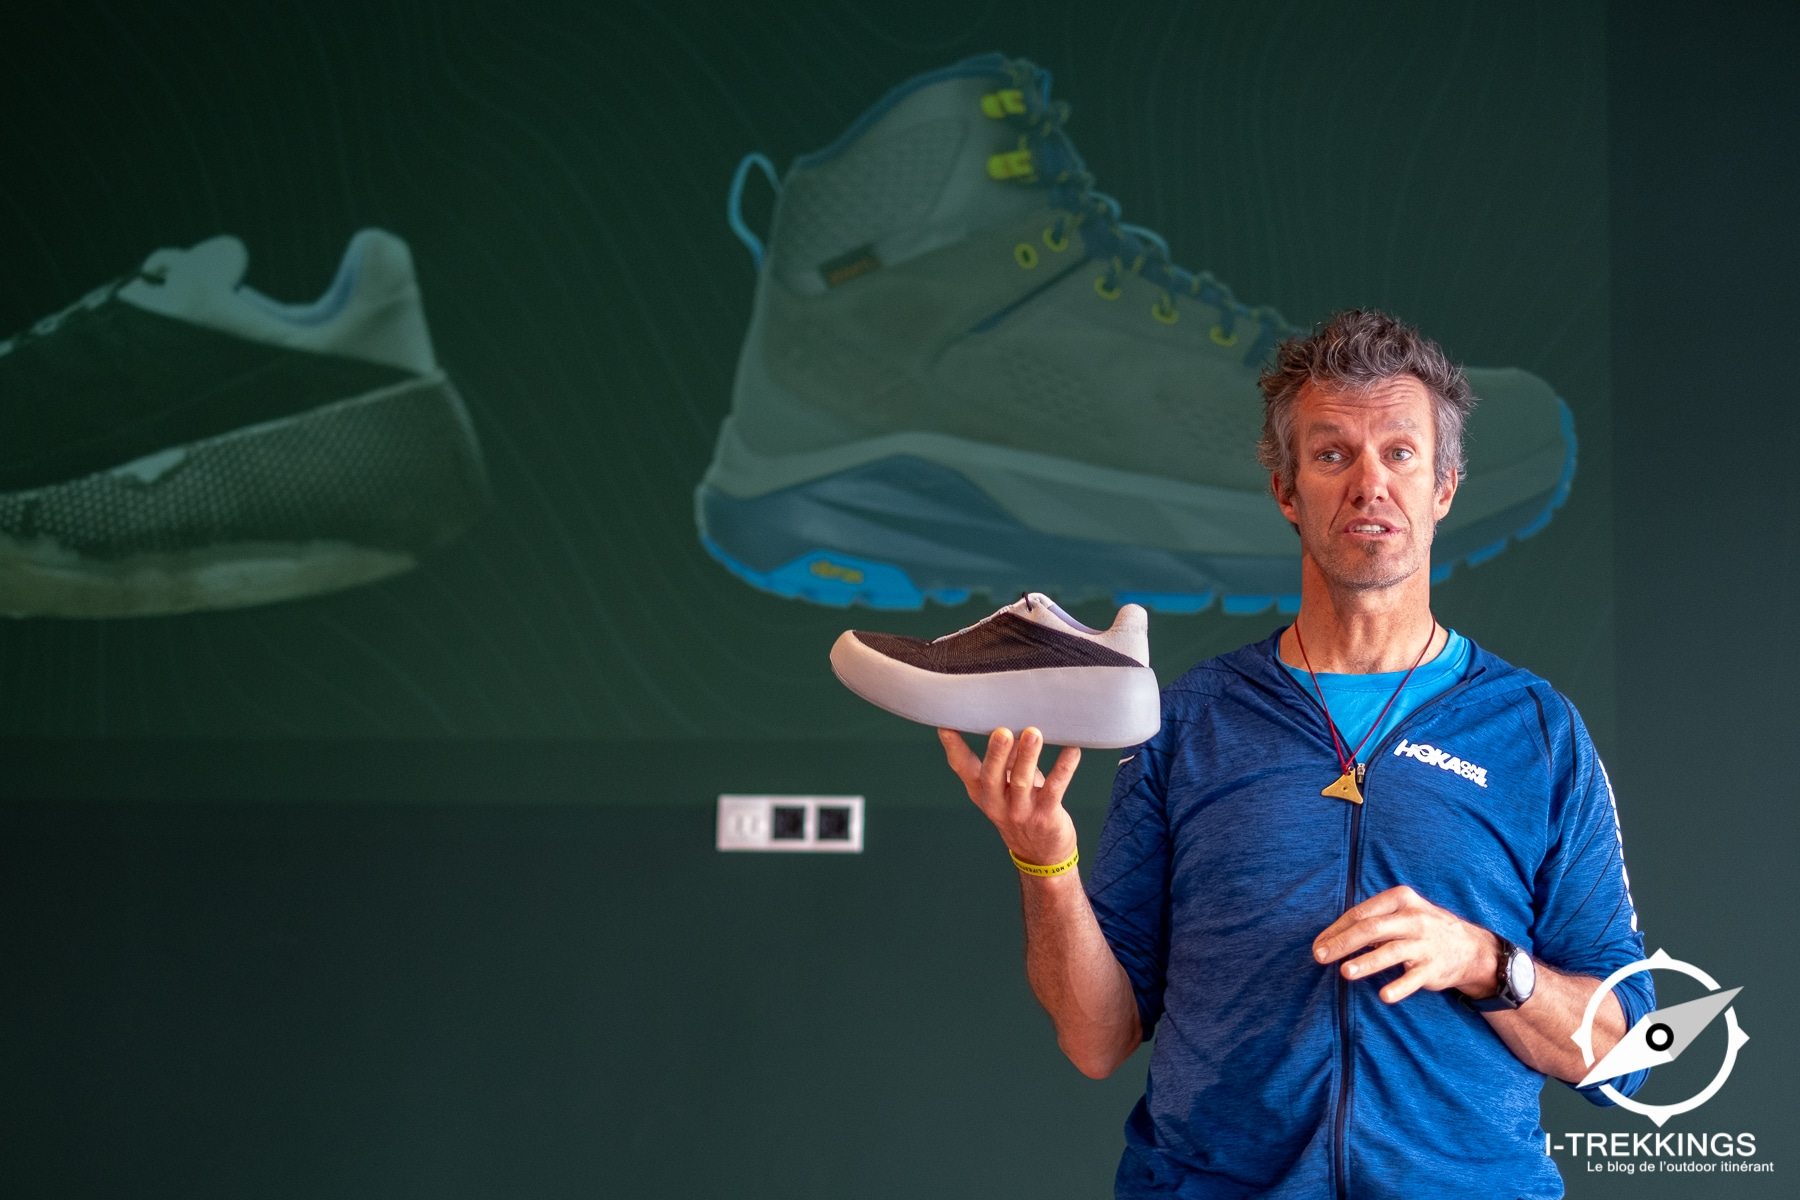 Prototype Hoka One One